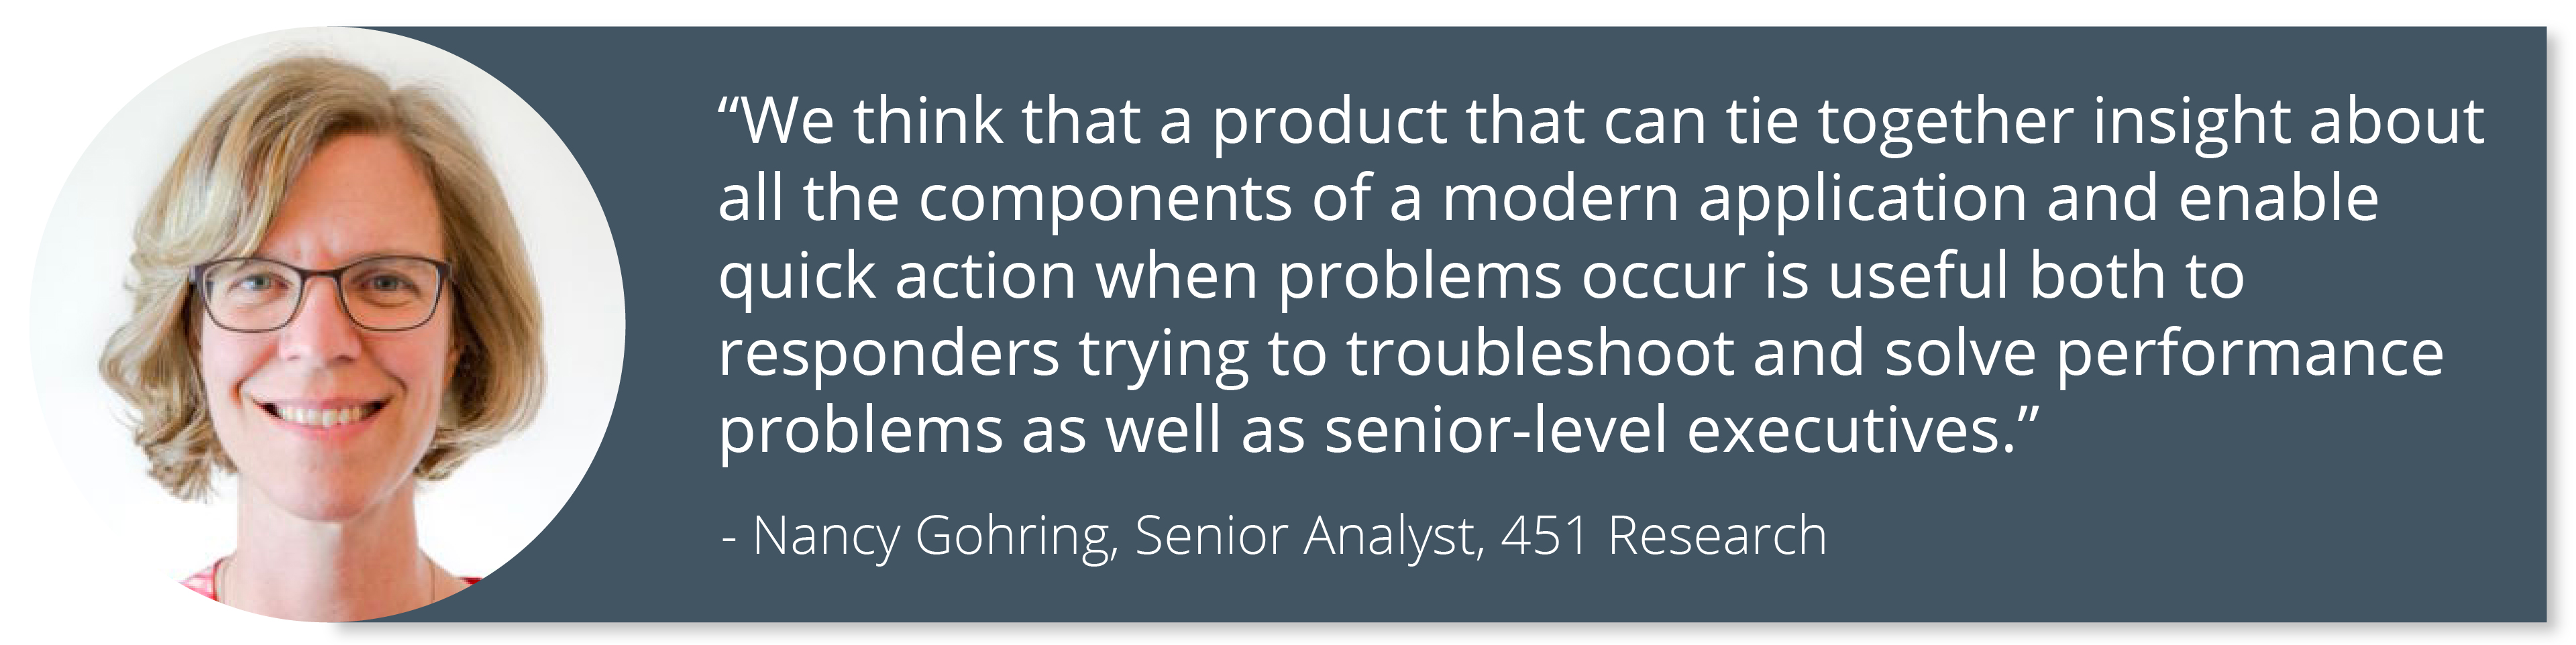 Nancy Gohring, Senior Analyst, 451 Research